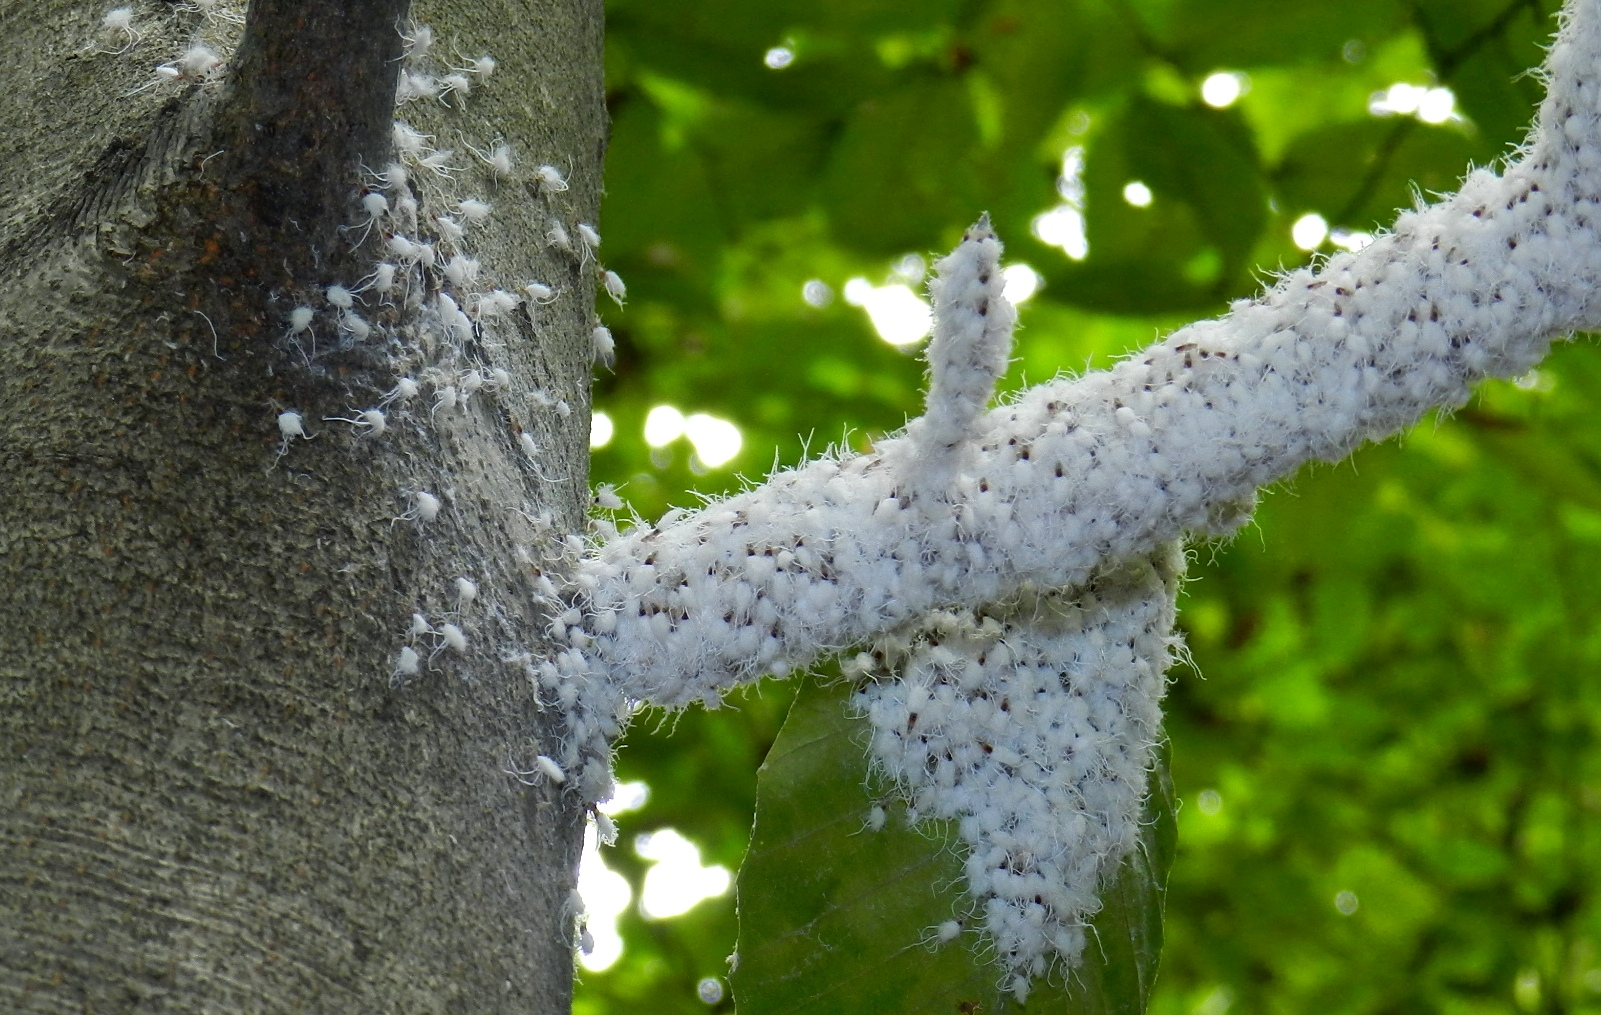 A colony of beech blight aphids